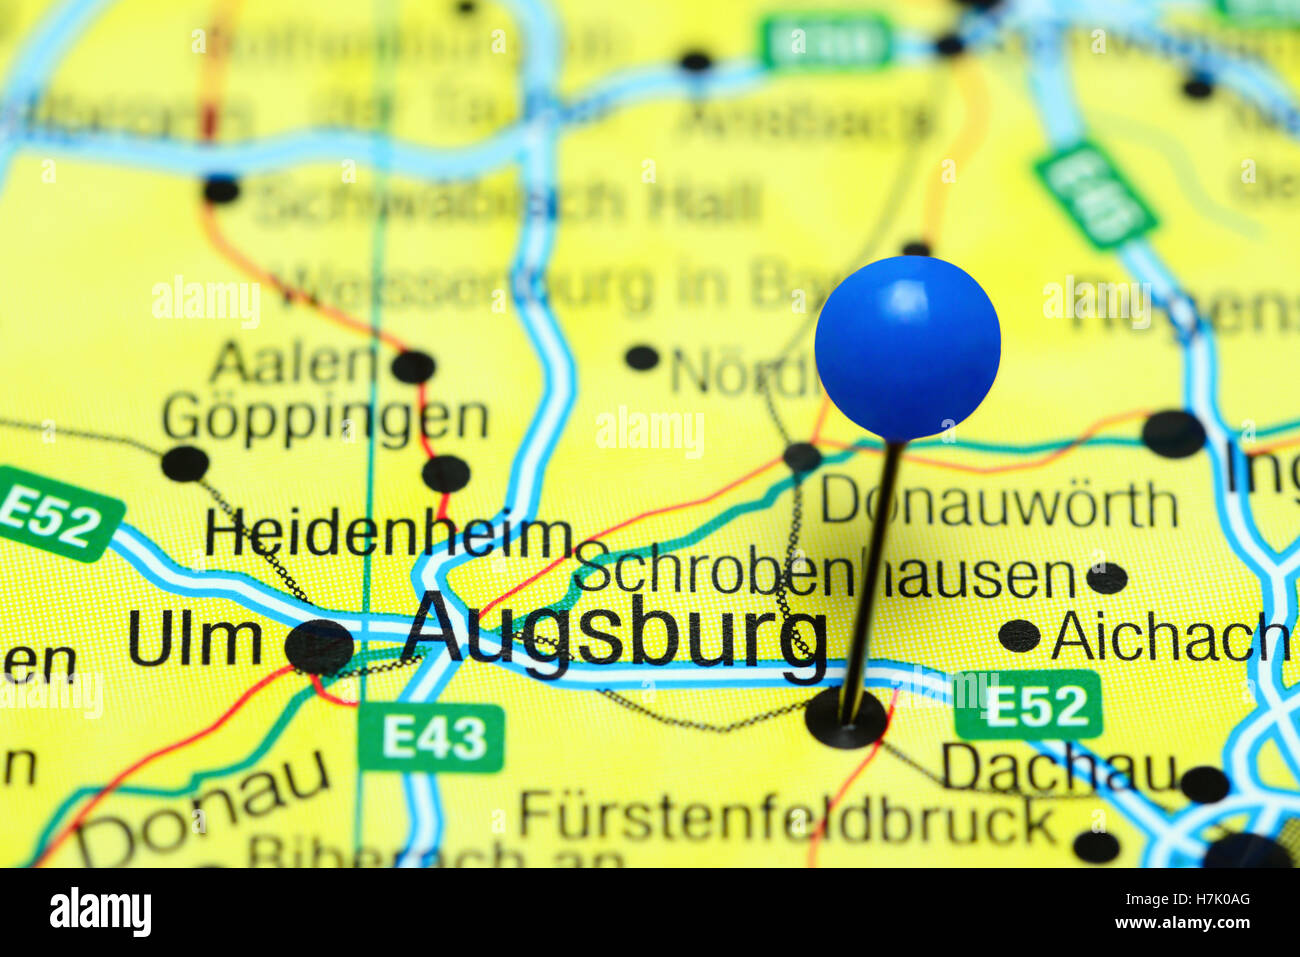 Augsburg pinned on a map of Germany Stock Photo Royalty Free Image